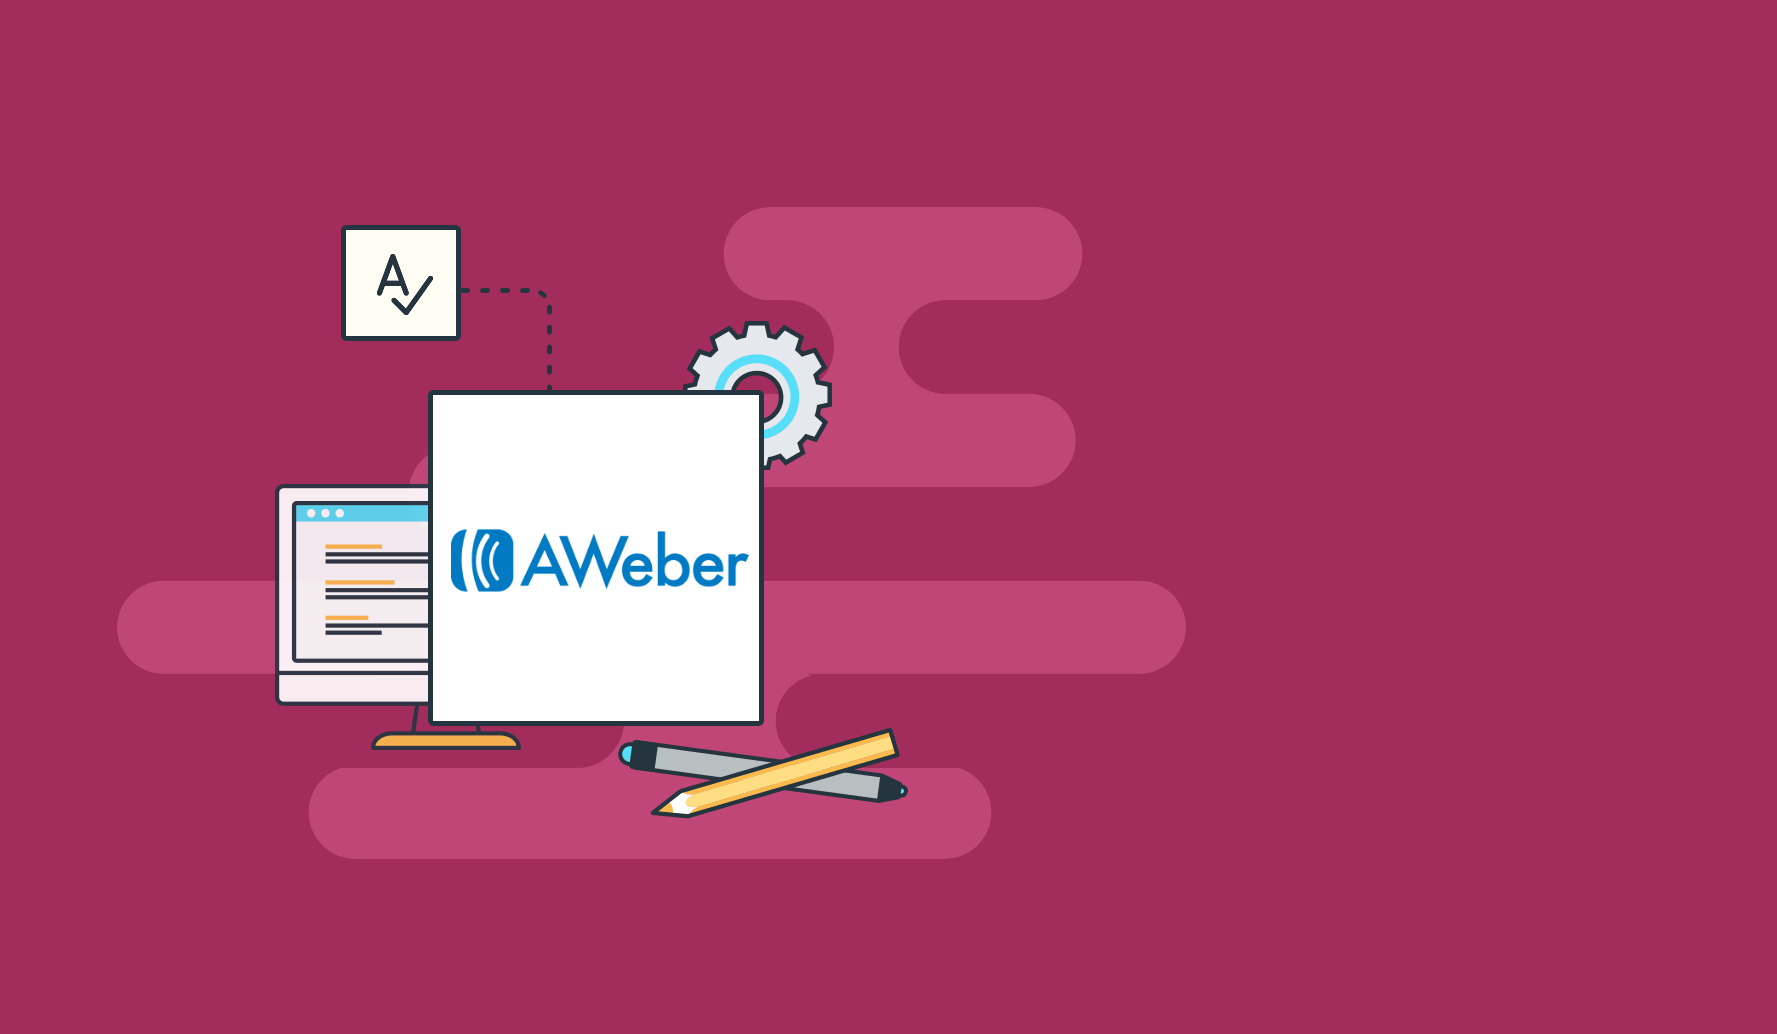 Aweber Vs Squarespace